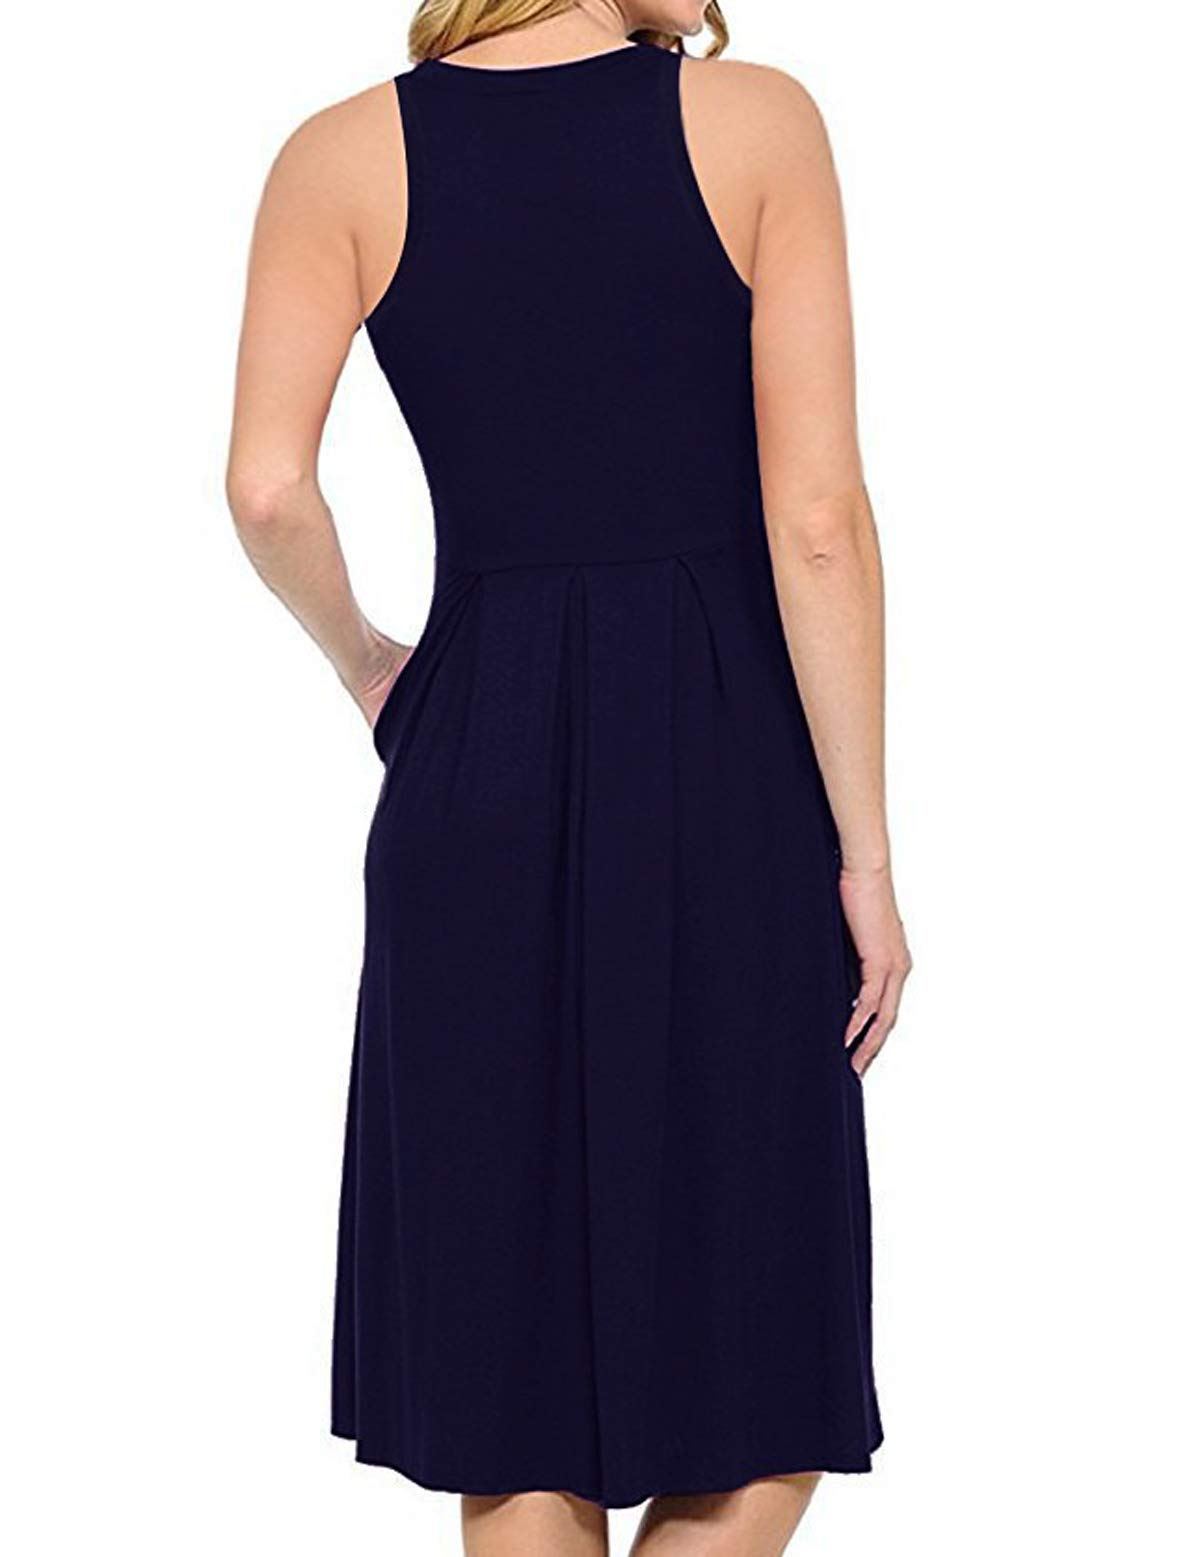 HUALAIMEI Modest Dresses for Women, Ladies Scoop Neck Sleeveless Casual Midi Dress Knee Length Summer Tanks Long Tunic with Pockets Navy Blue L